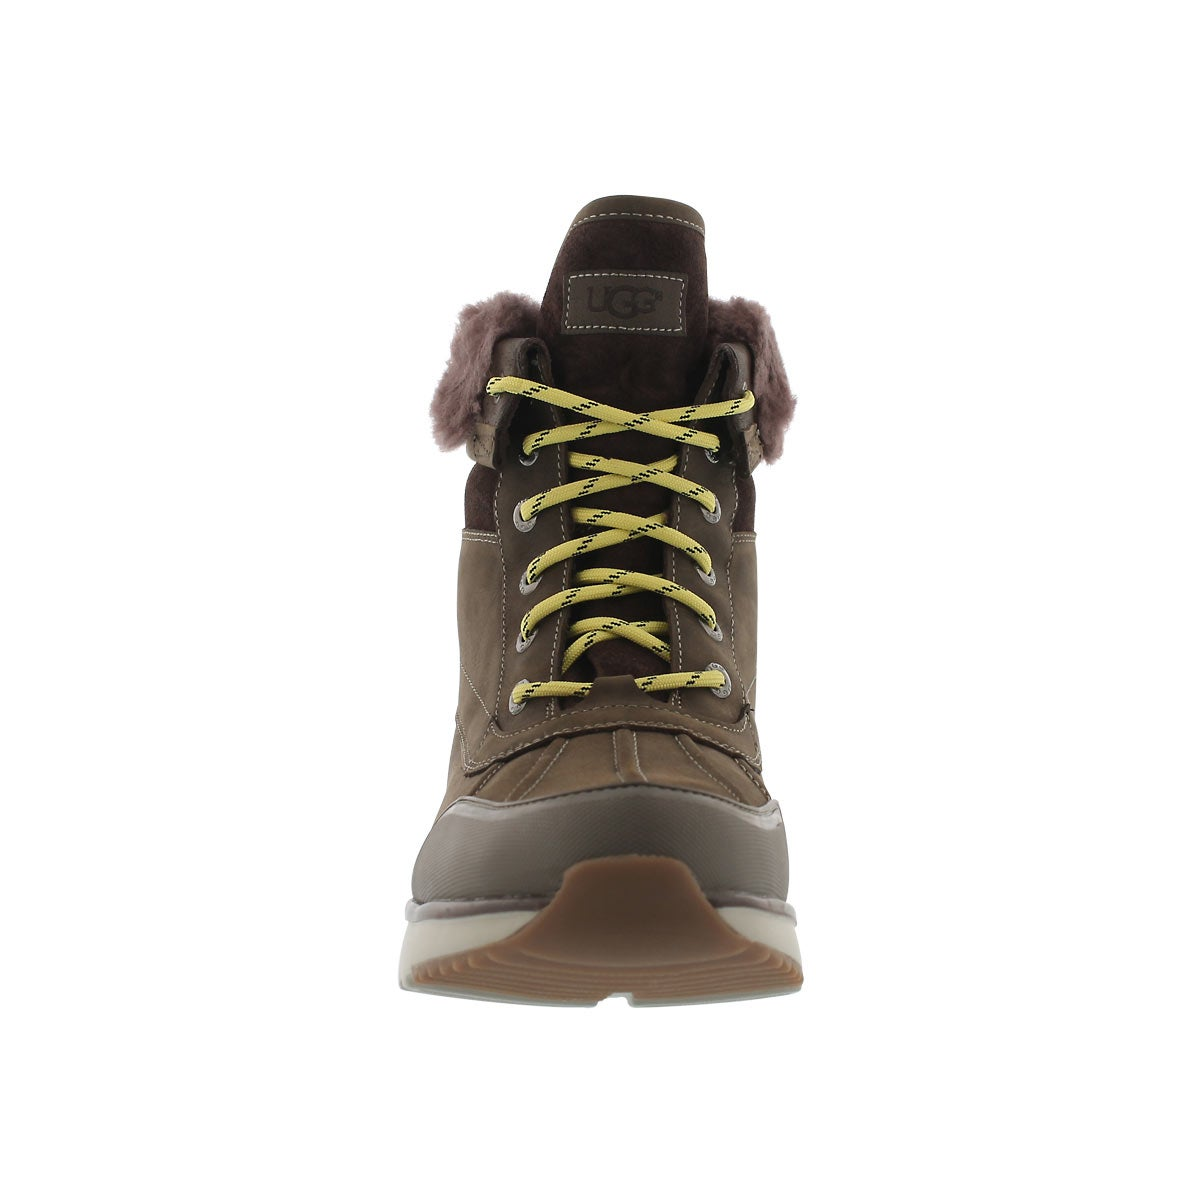 Mns Eliasson slate lace up winter boot